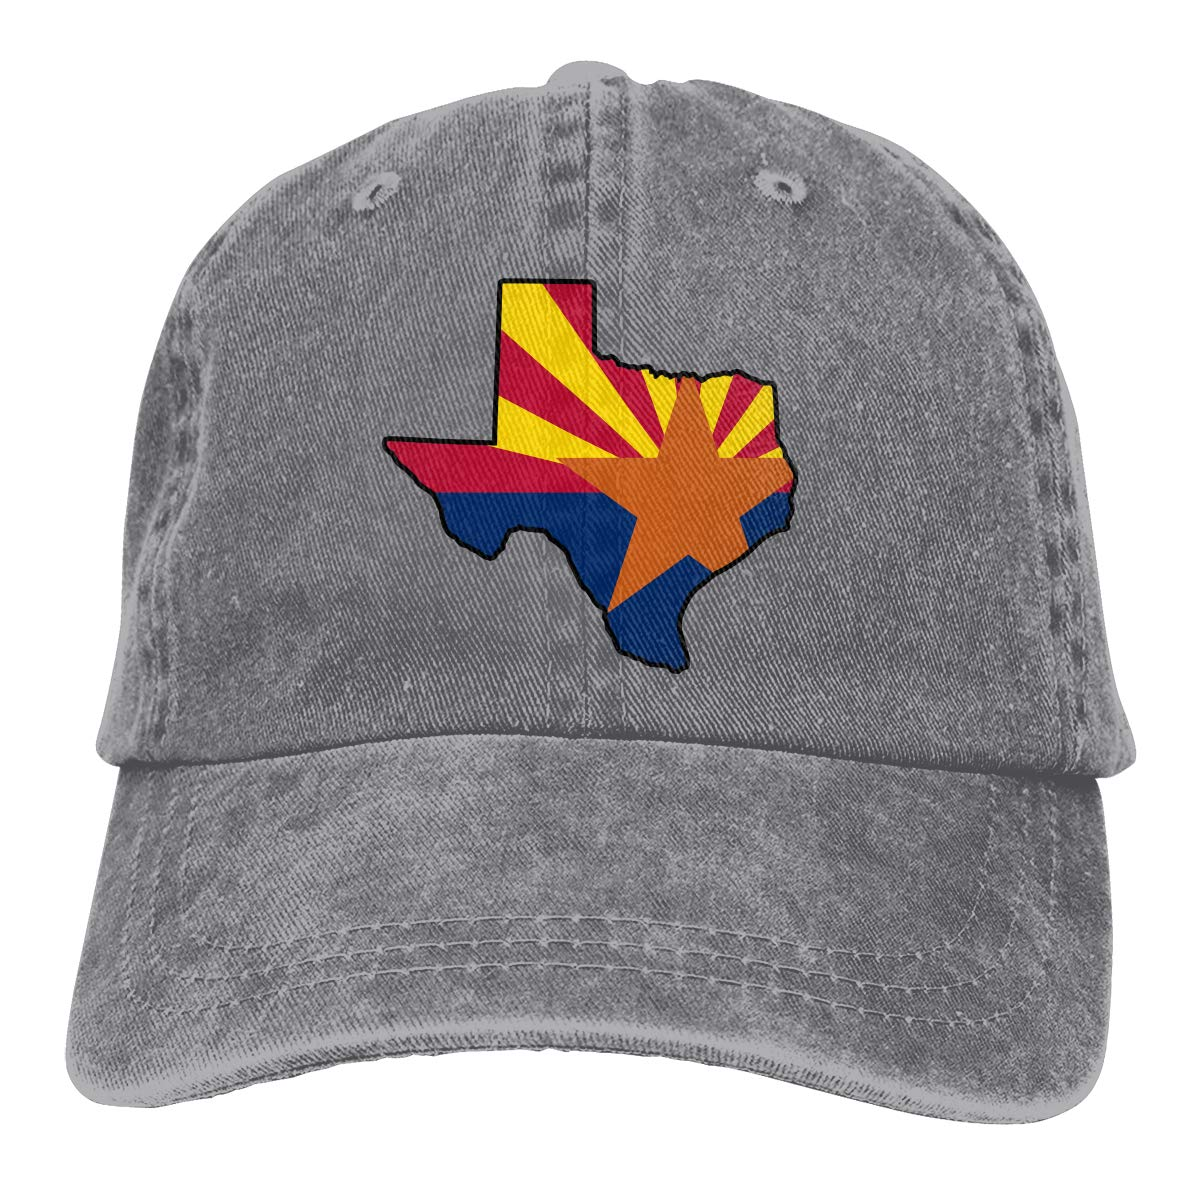 Texas Arizona Flag Unisex Custom Jeans Hip Hop Cap Adjustable Baseball Cap